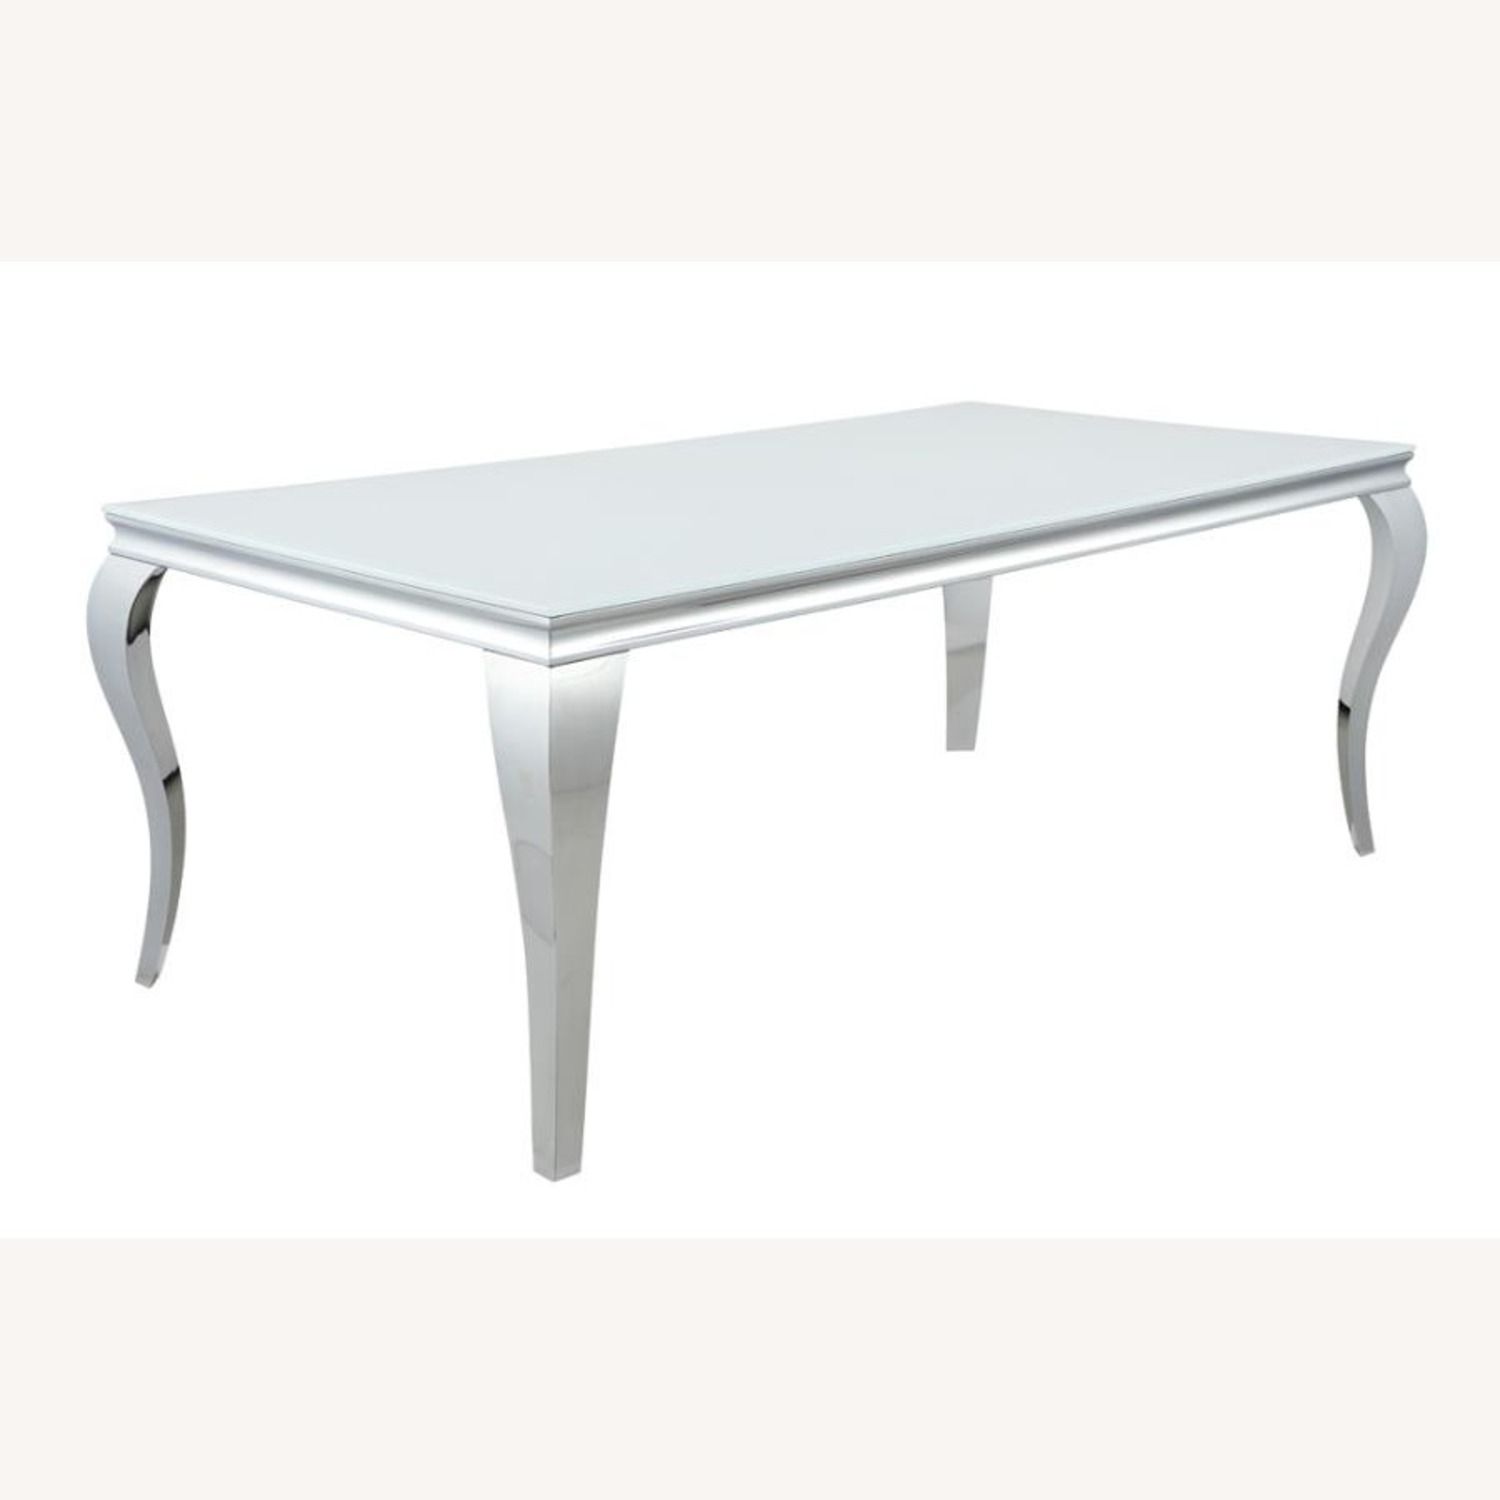 Dining Table In Chrome Base Finish W/ White Top - image-0